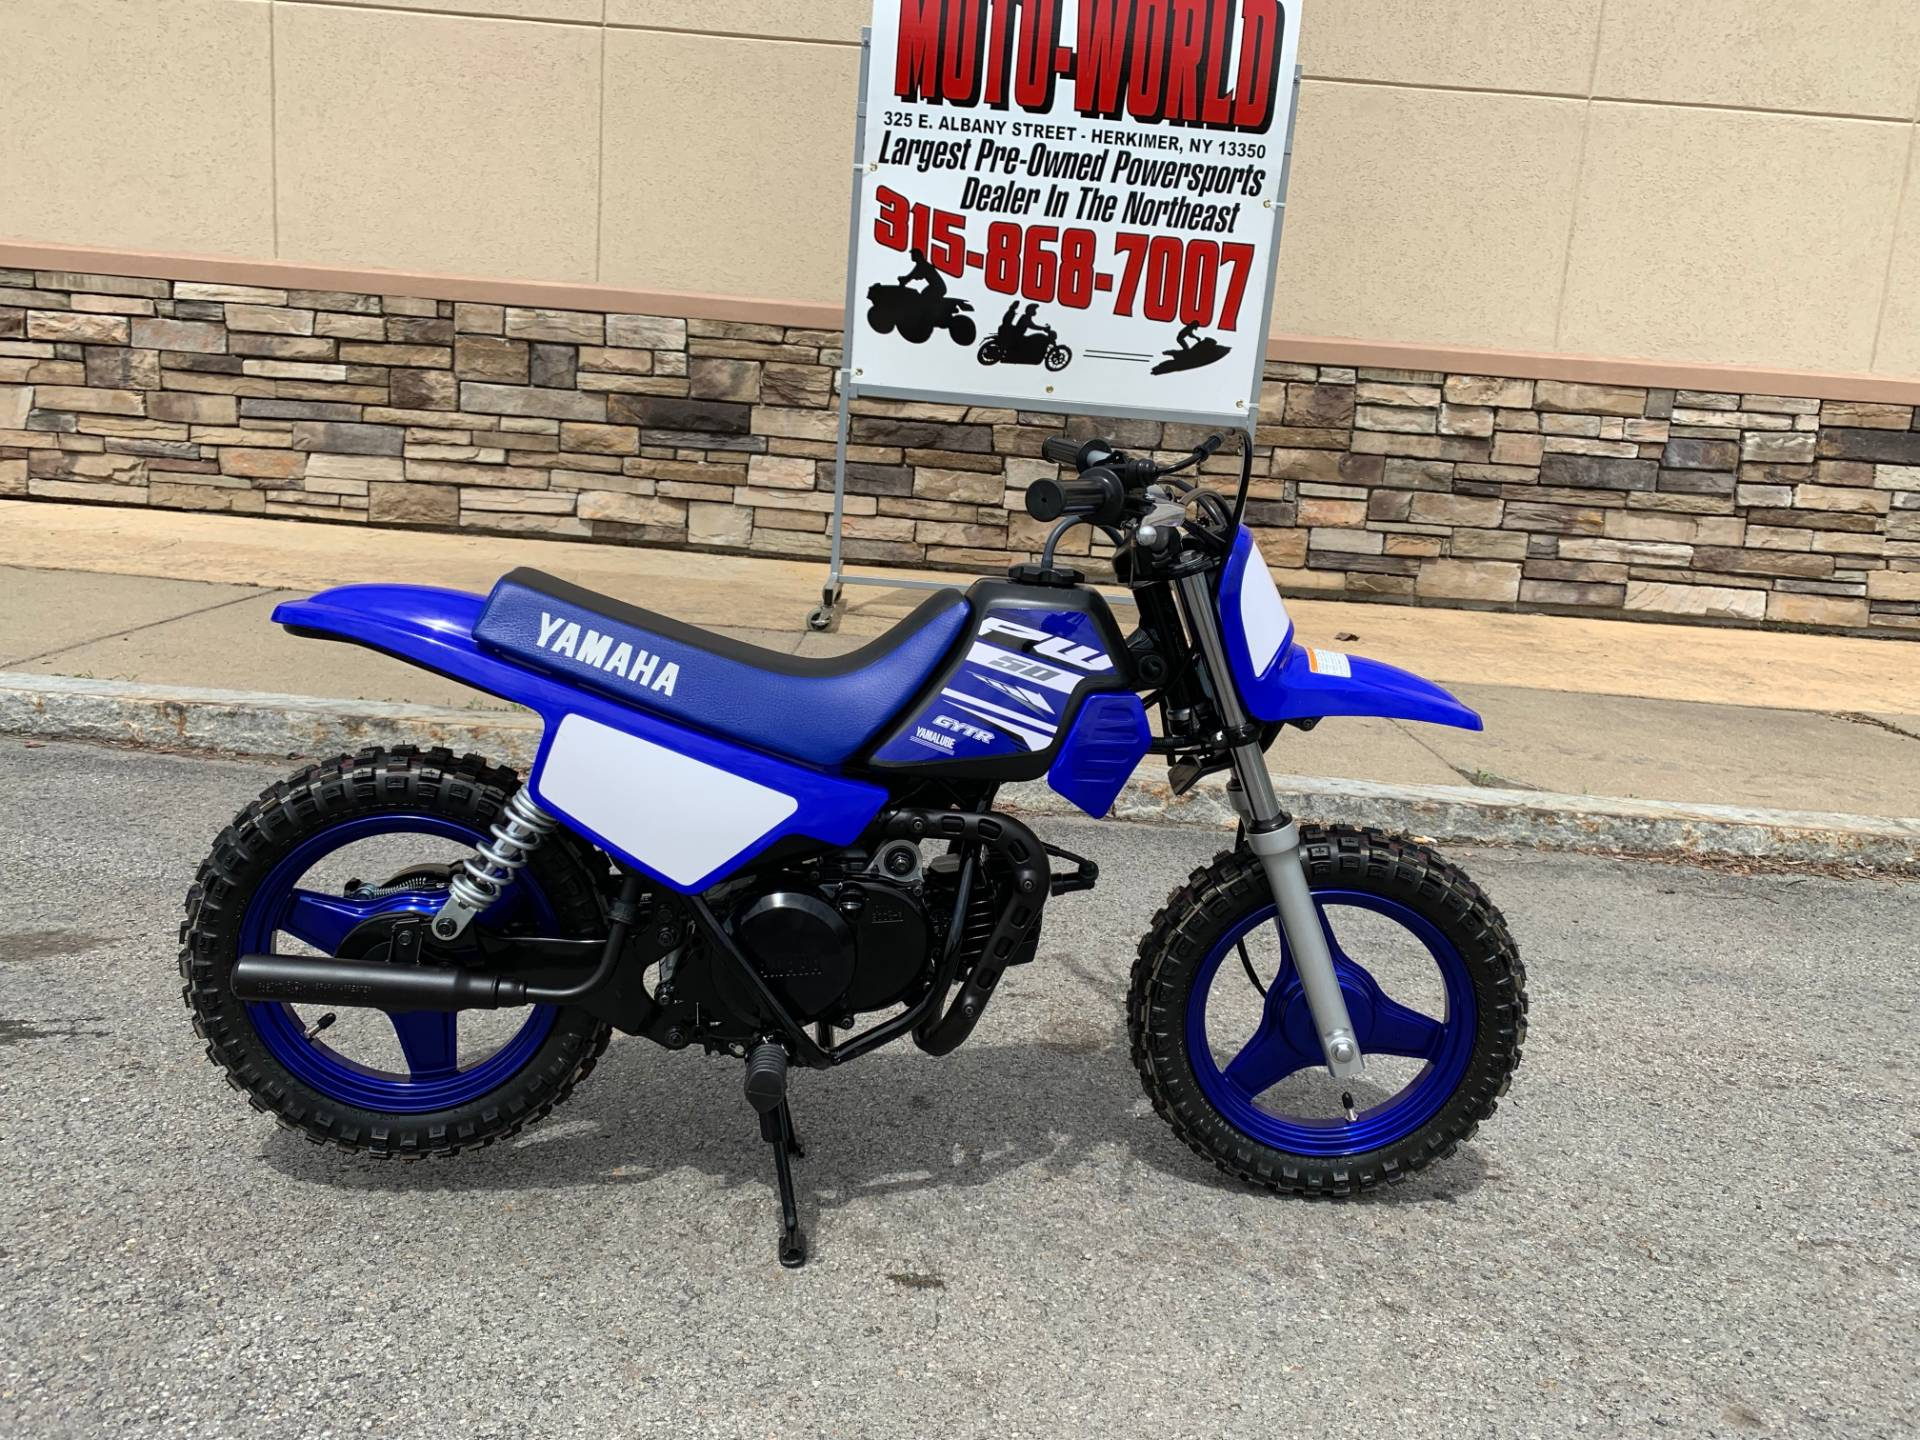 2018 Yamaha PW50 in Herkimer, New York - Photo 2